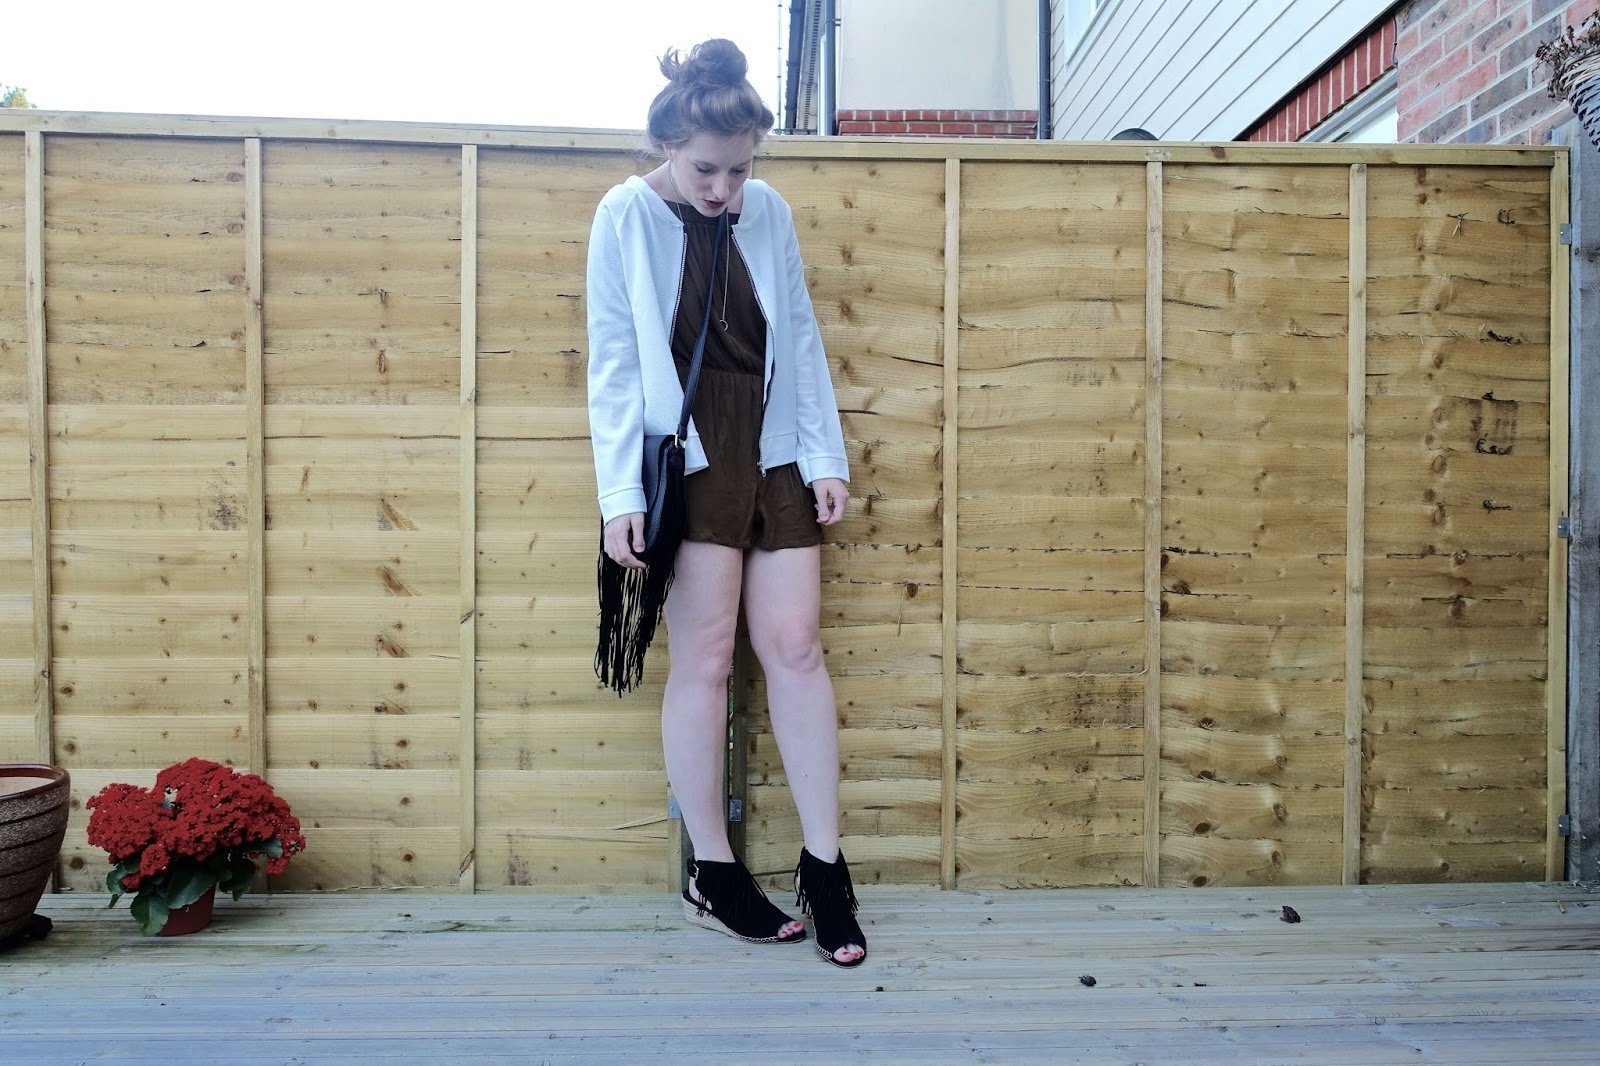 rightupmystreet collaboration with Boohoo